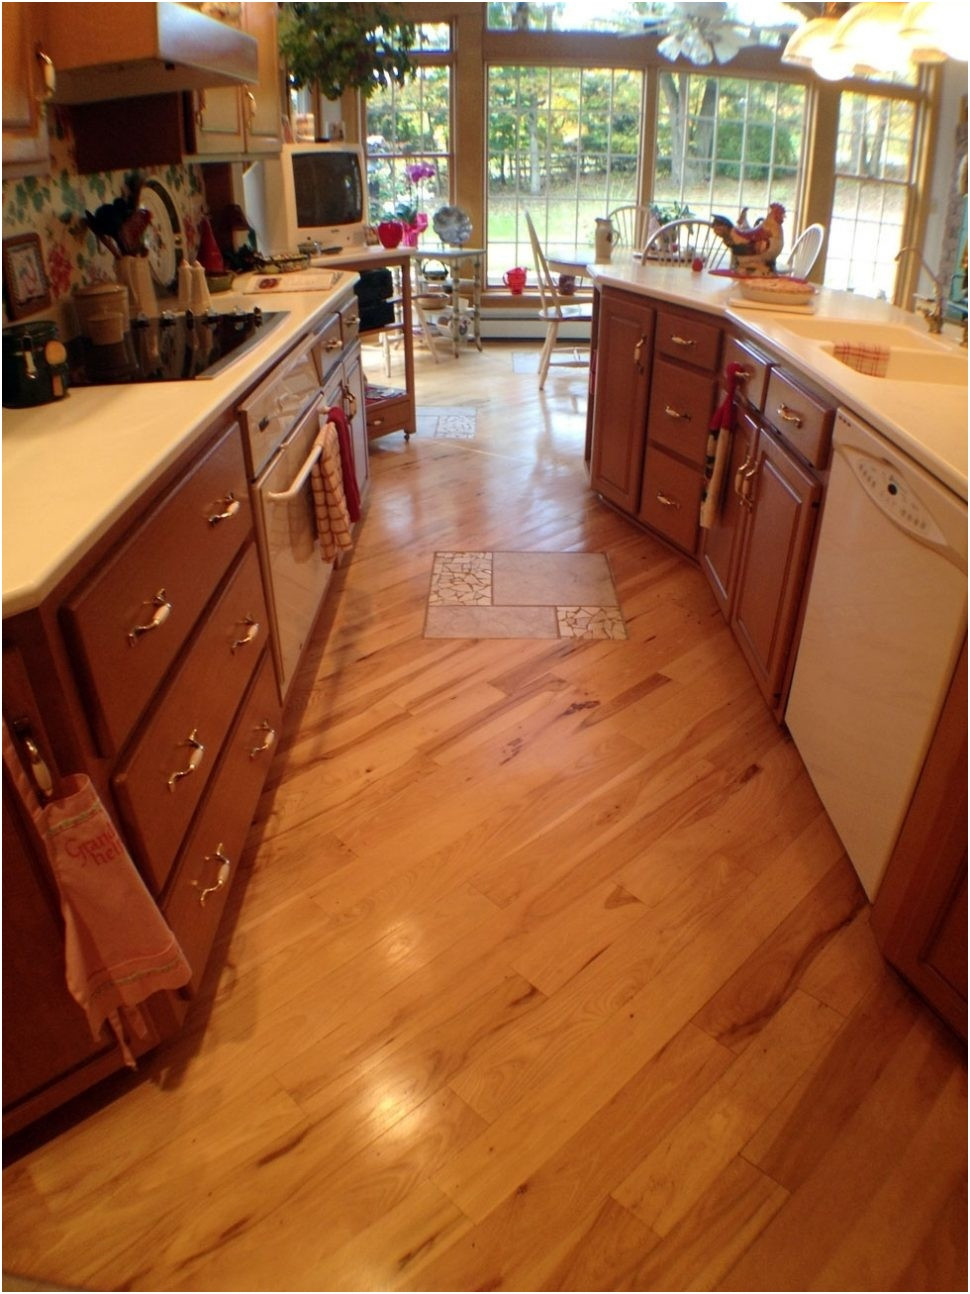 how much cost to install hardwood floor of how much hardwood flooring cost galerie floor how to install in how much hardwood flooring cost stock hardwood flooring cost per sq ft fresh floor floor installod